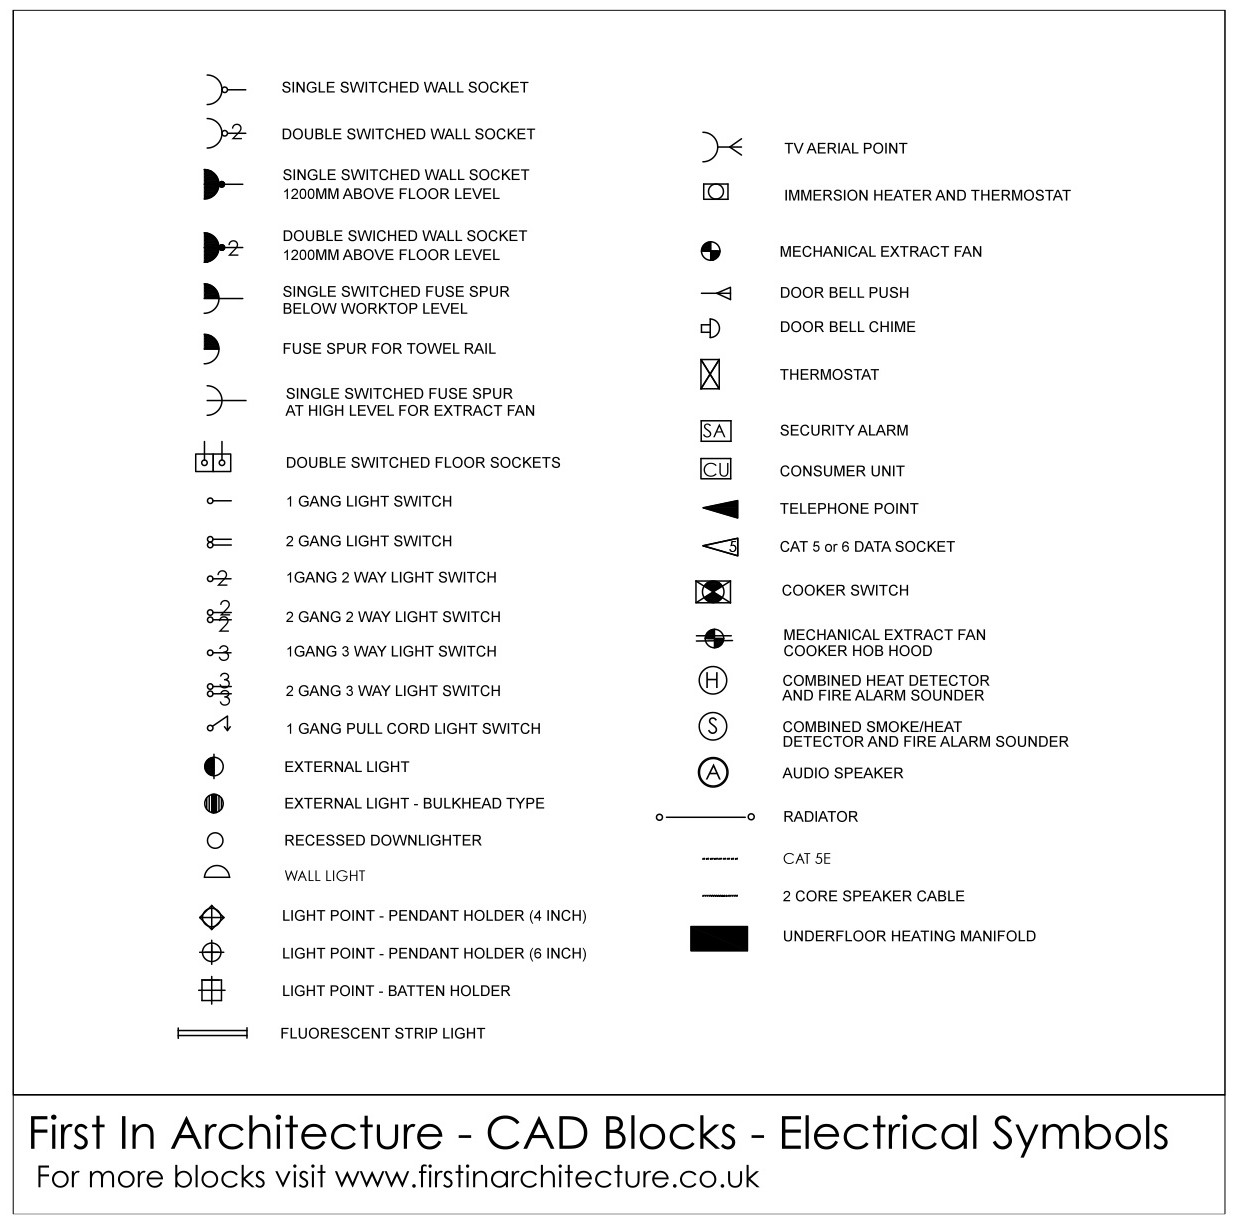 Free cad blocks electrical symbols first in architecture electrical symbols cad blocks 01 biocorpaavc Choice Image